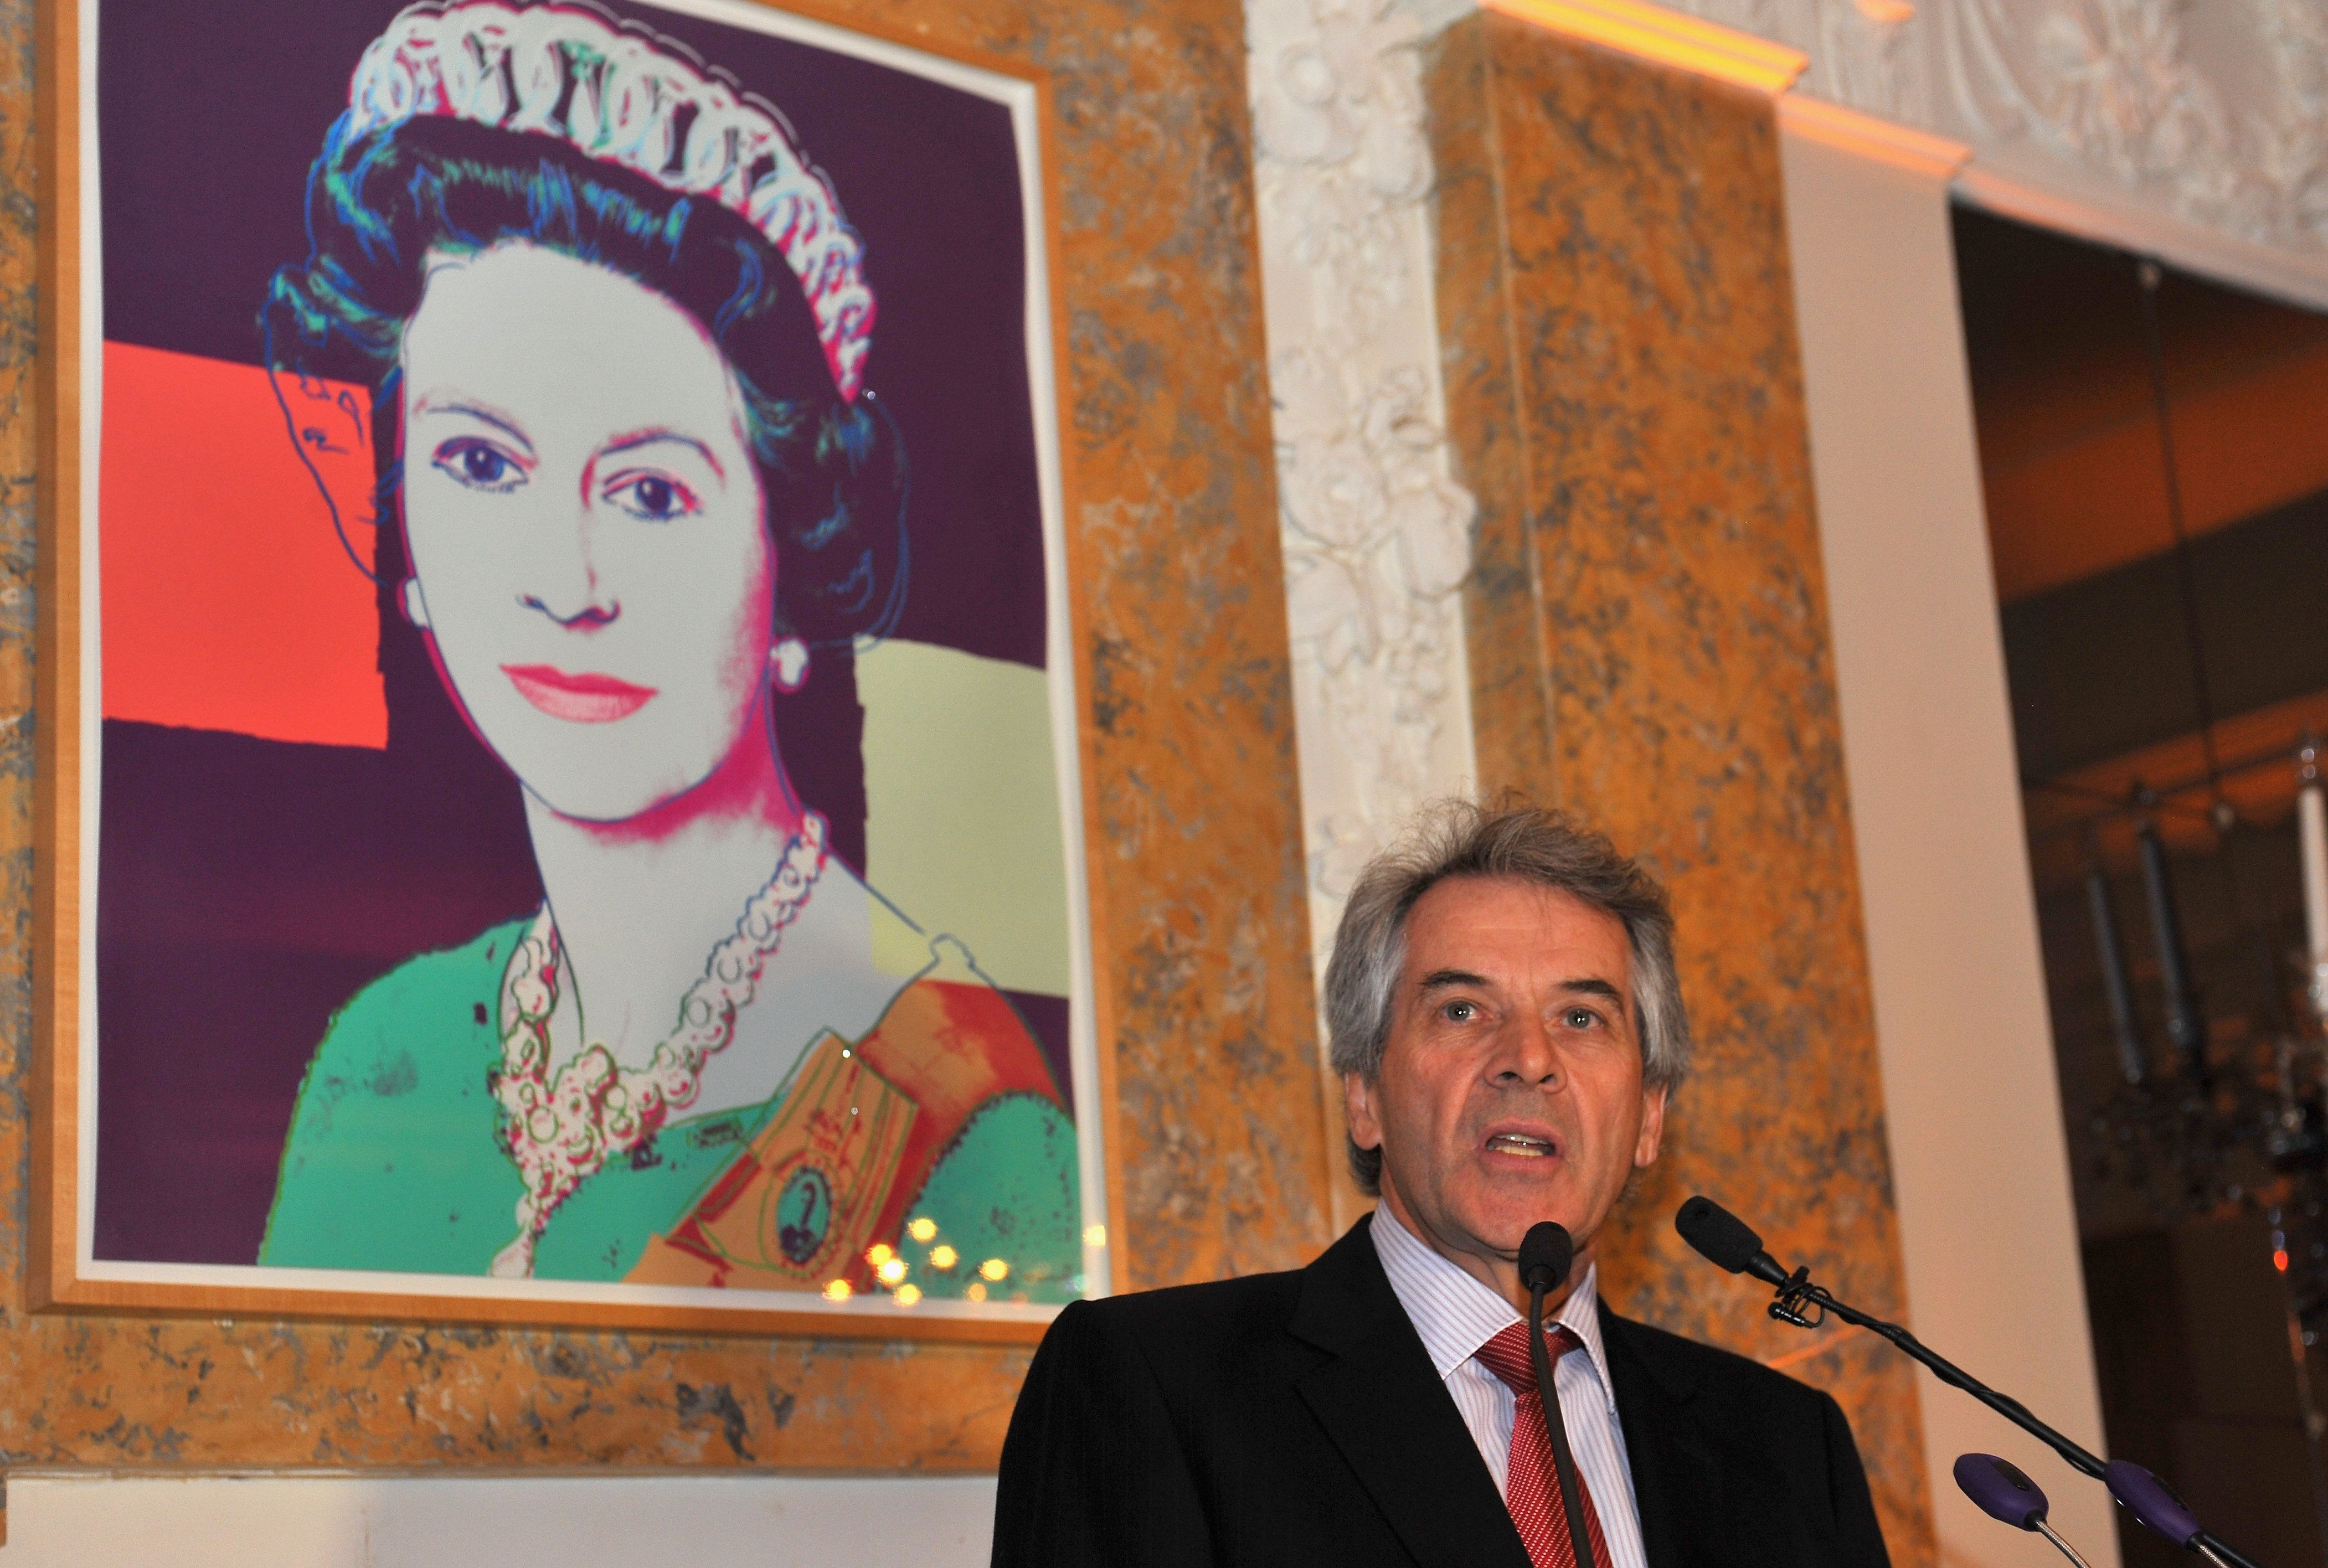 WASHINGTON, DC - APRIL 24:  The British Ambassador to the United States Sir Peter Westmacott speaks at Capitol File's WHCD Weekend Welcome Reception with Cecily Strong at The British Embassy on April 24, 2015 in Washington, DC.  (Photo by Larry French/Getty Images for Capitol File Magazine)